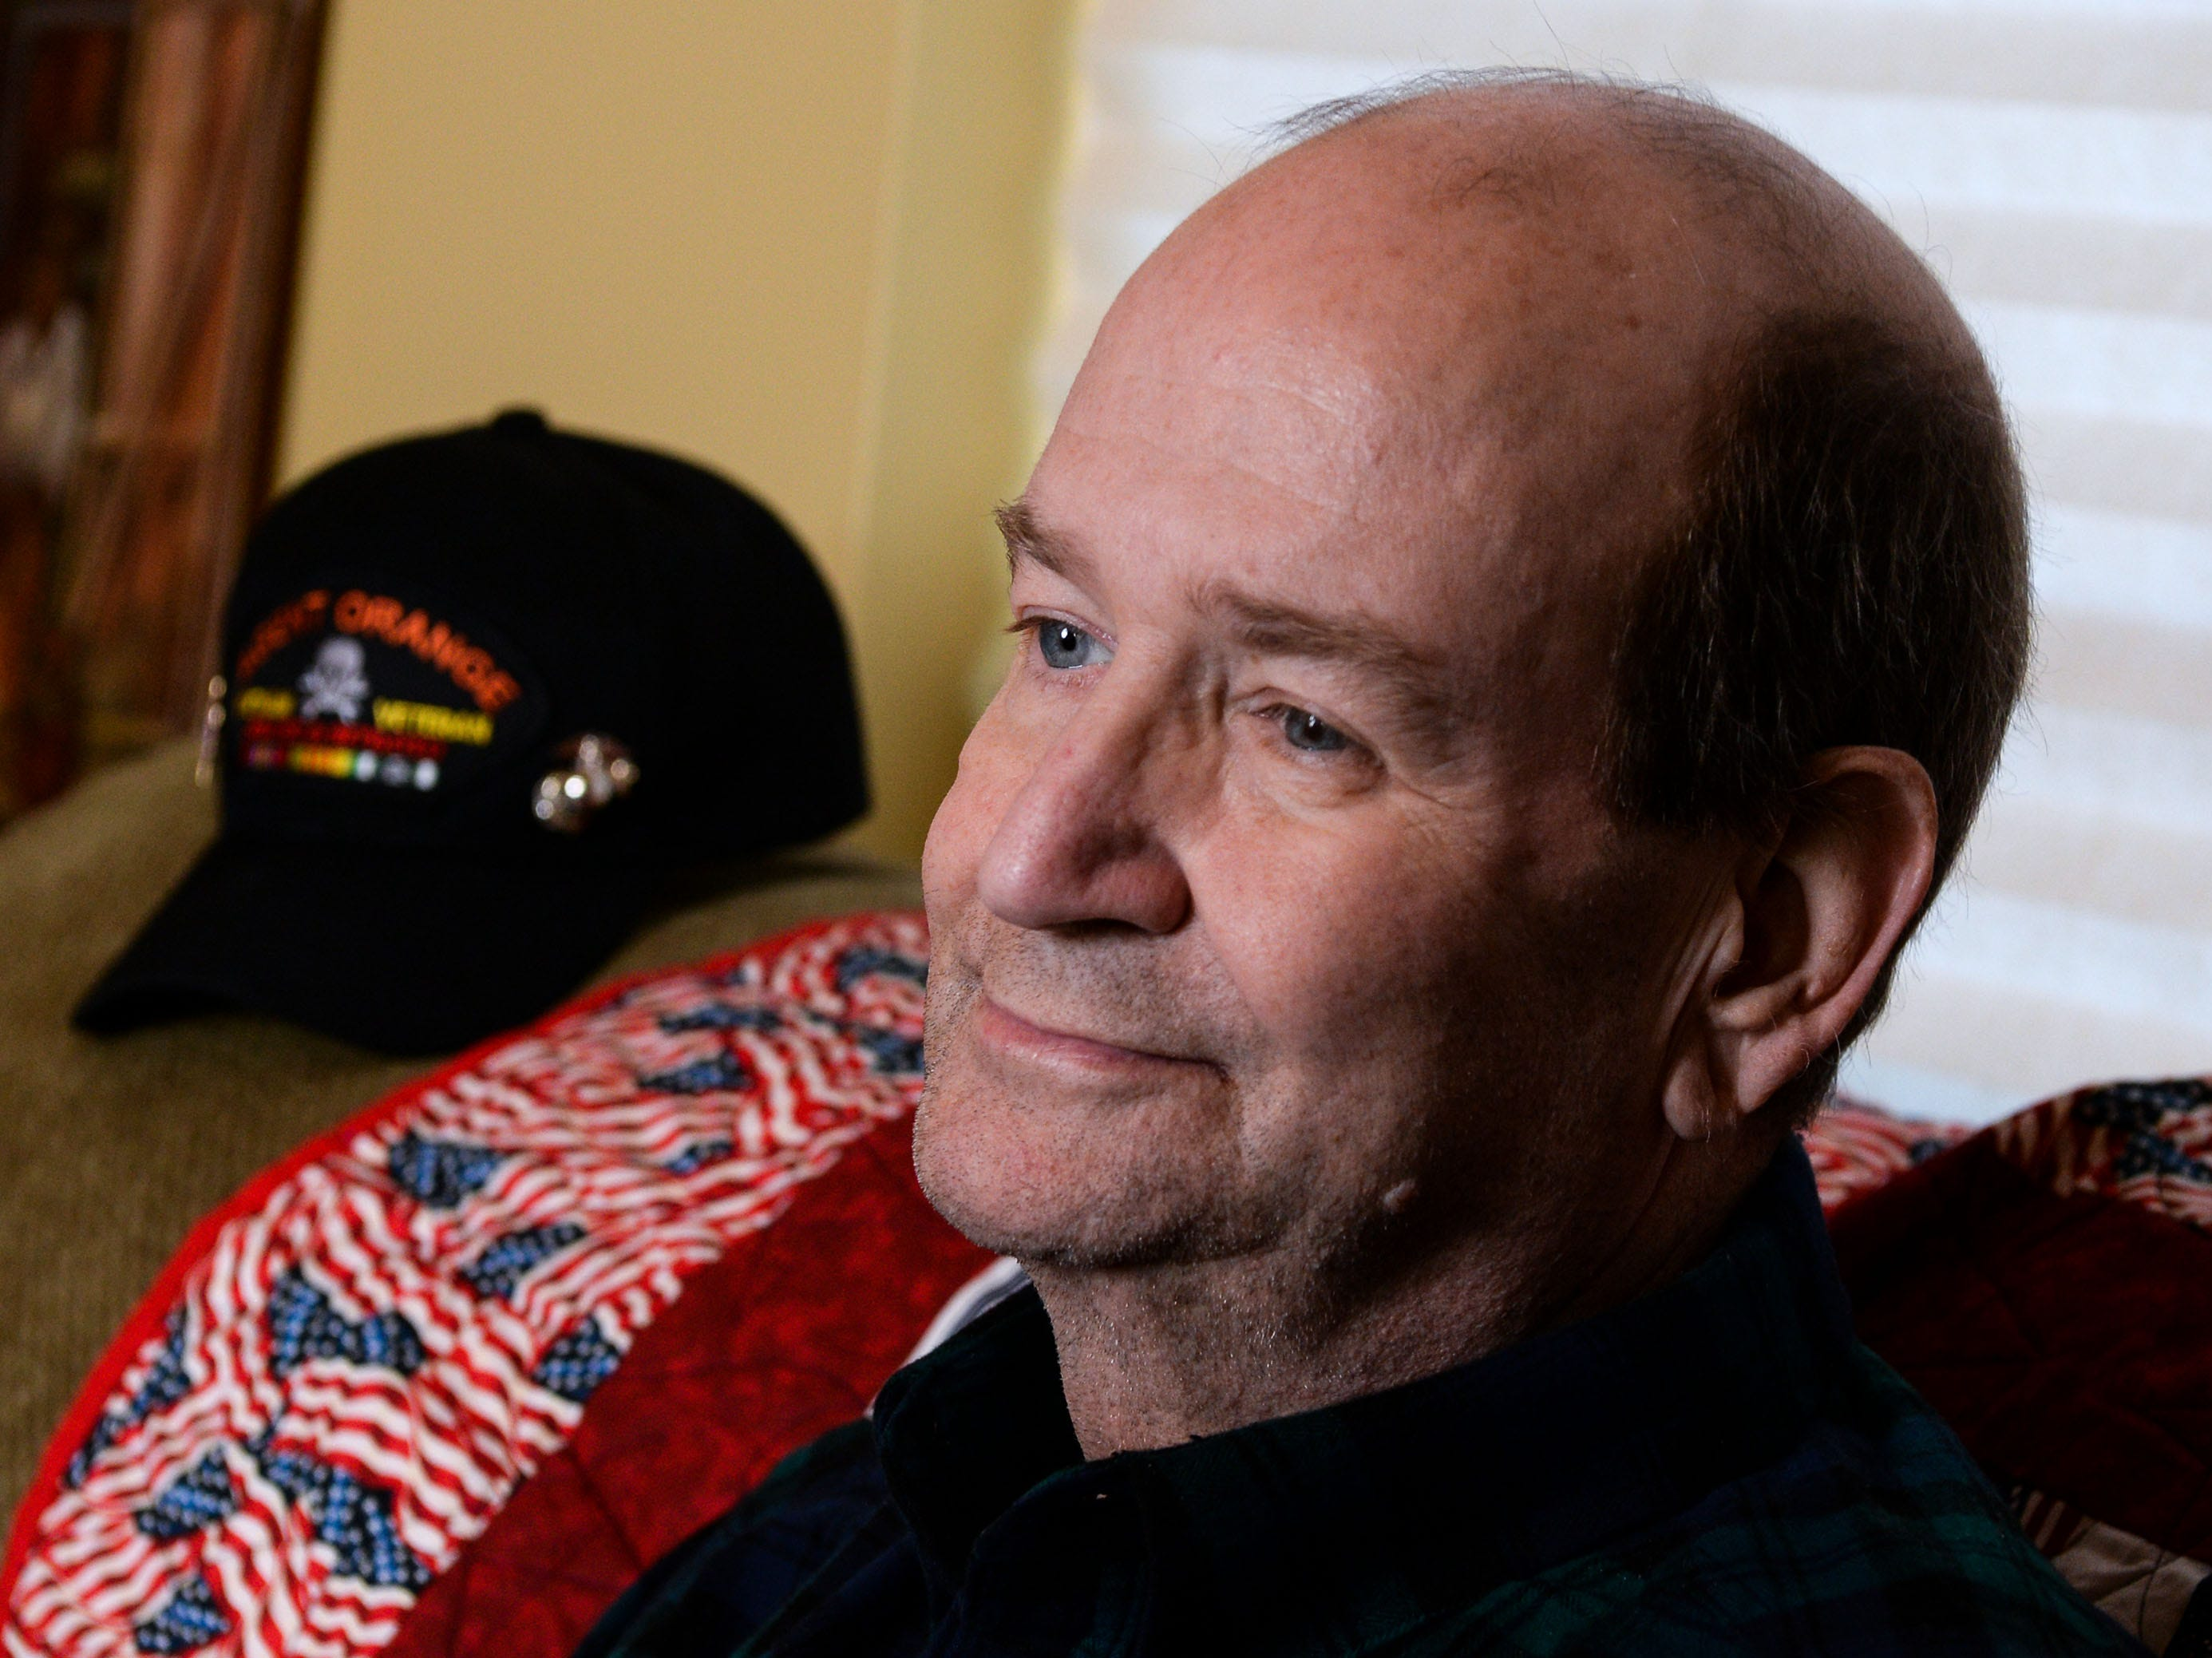 Vietnam Veteran Billy Konrad talks about dealing with illnesses, Veterans care, and surgery during an interview at his home in Anderson in December.